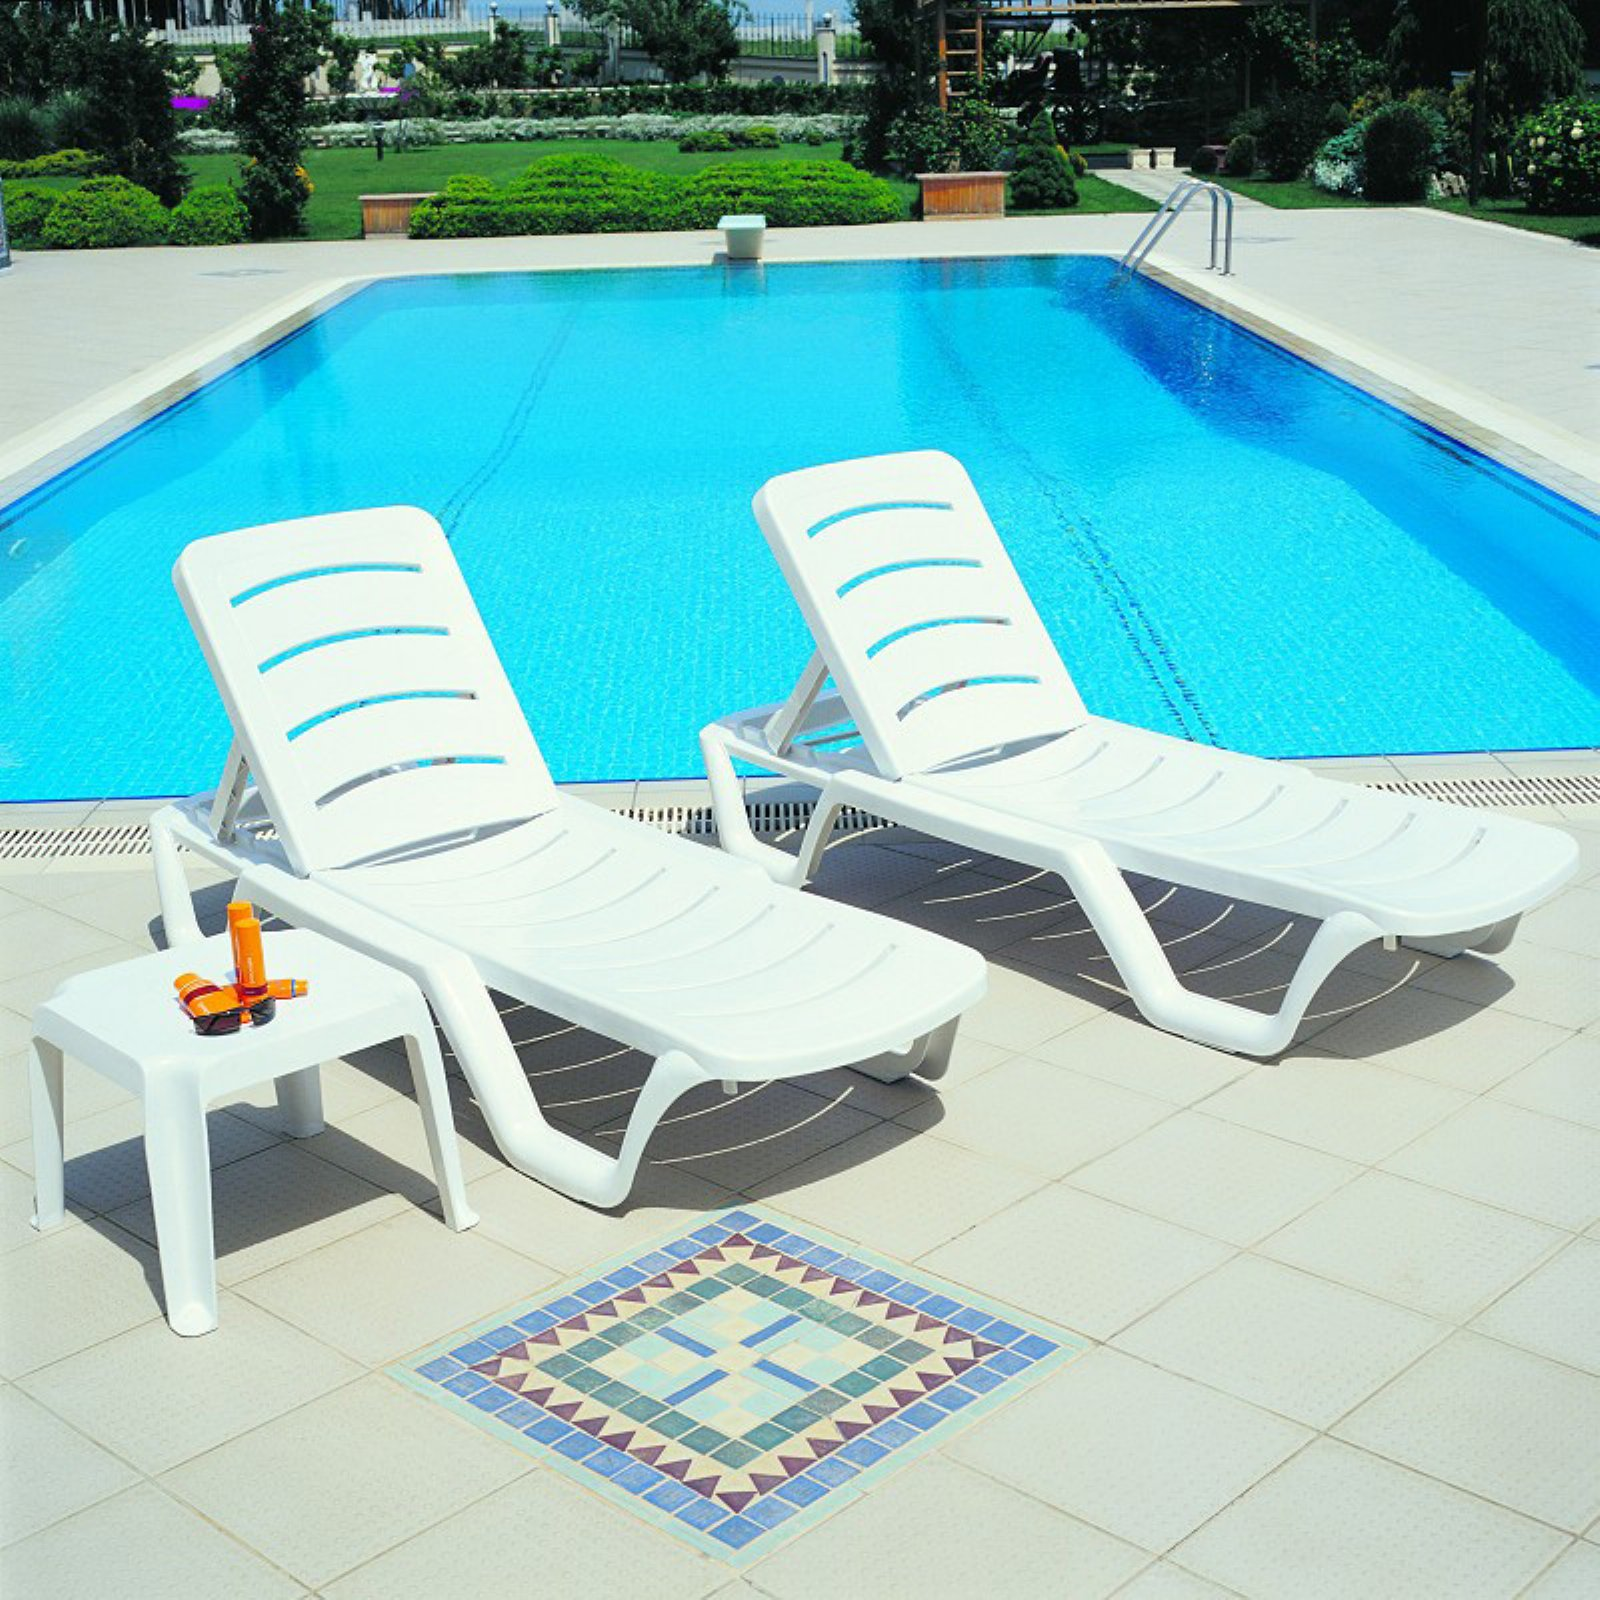 Compamia Sunlight Pool Chaise Lounge - Set of 4